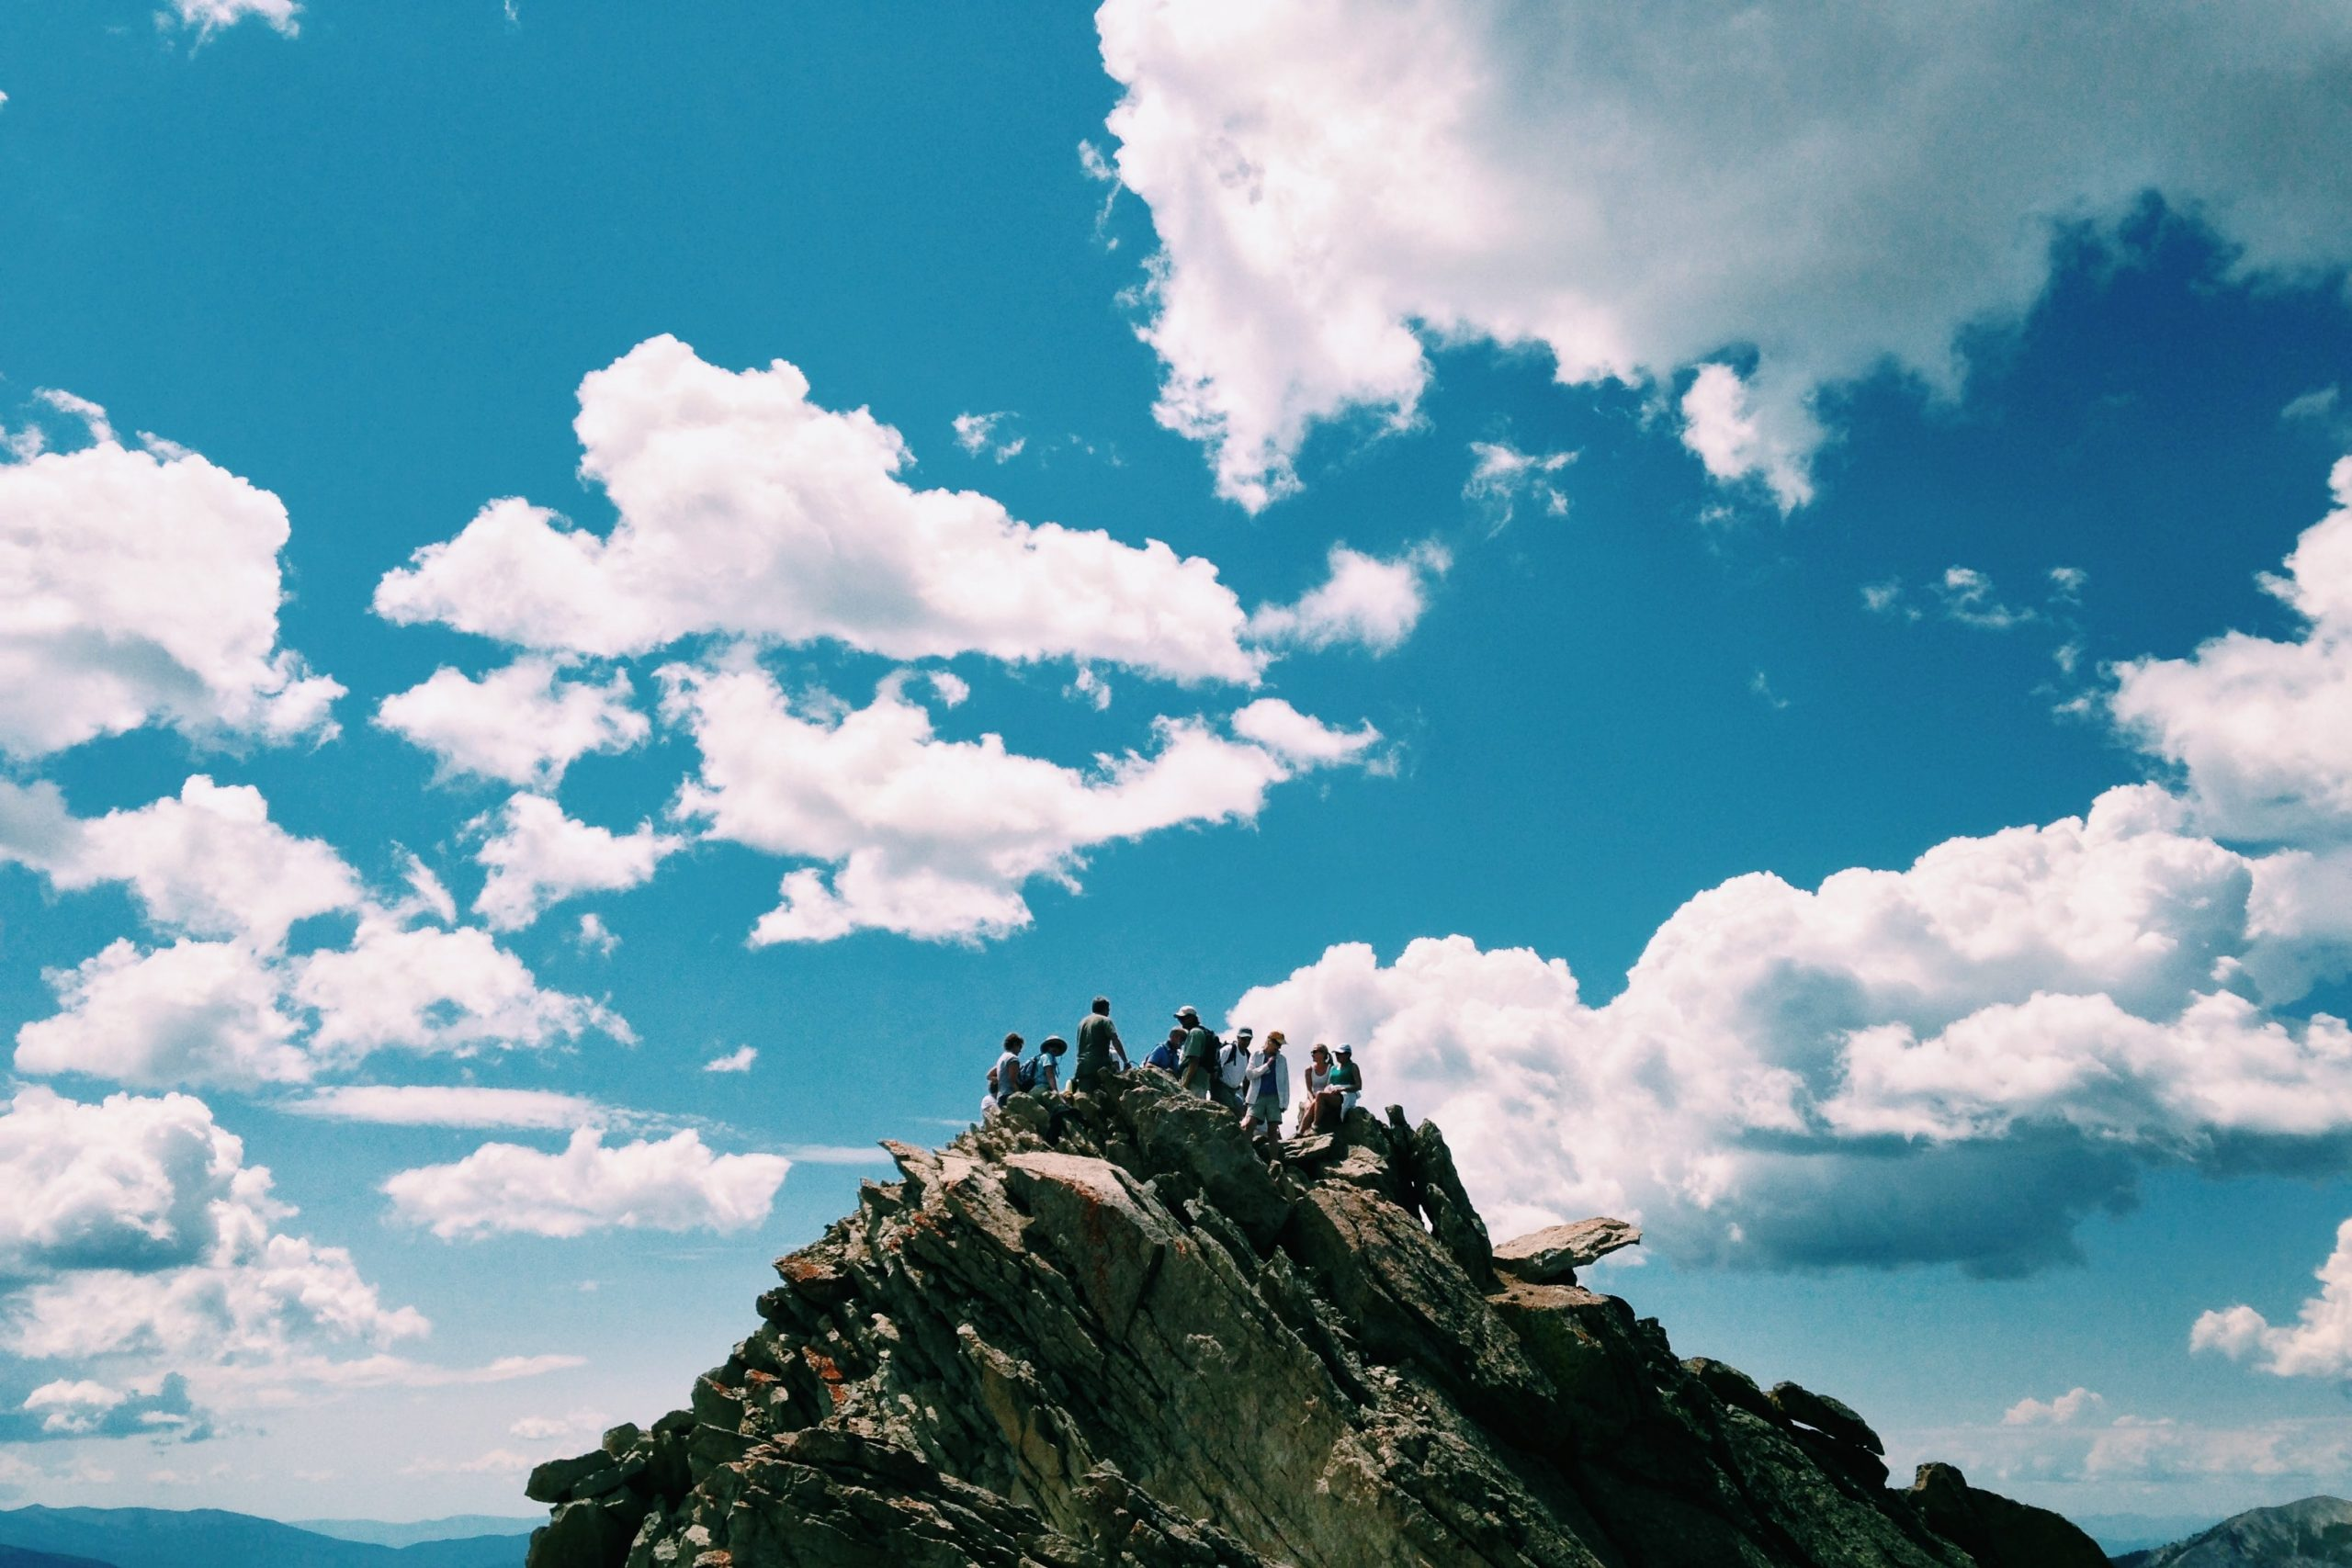 People gathering on mountain top against background of clouds